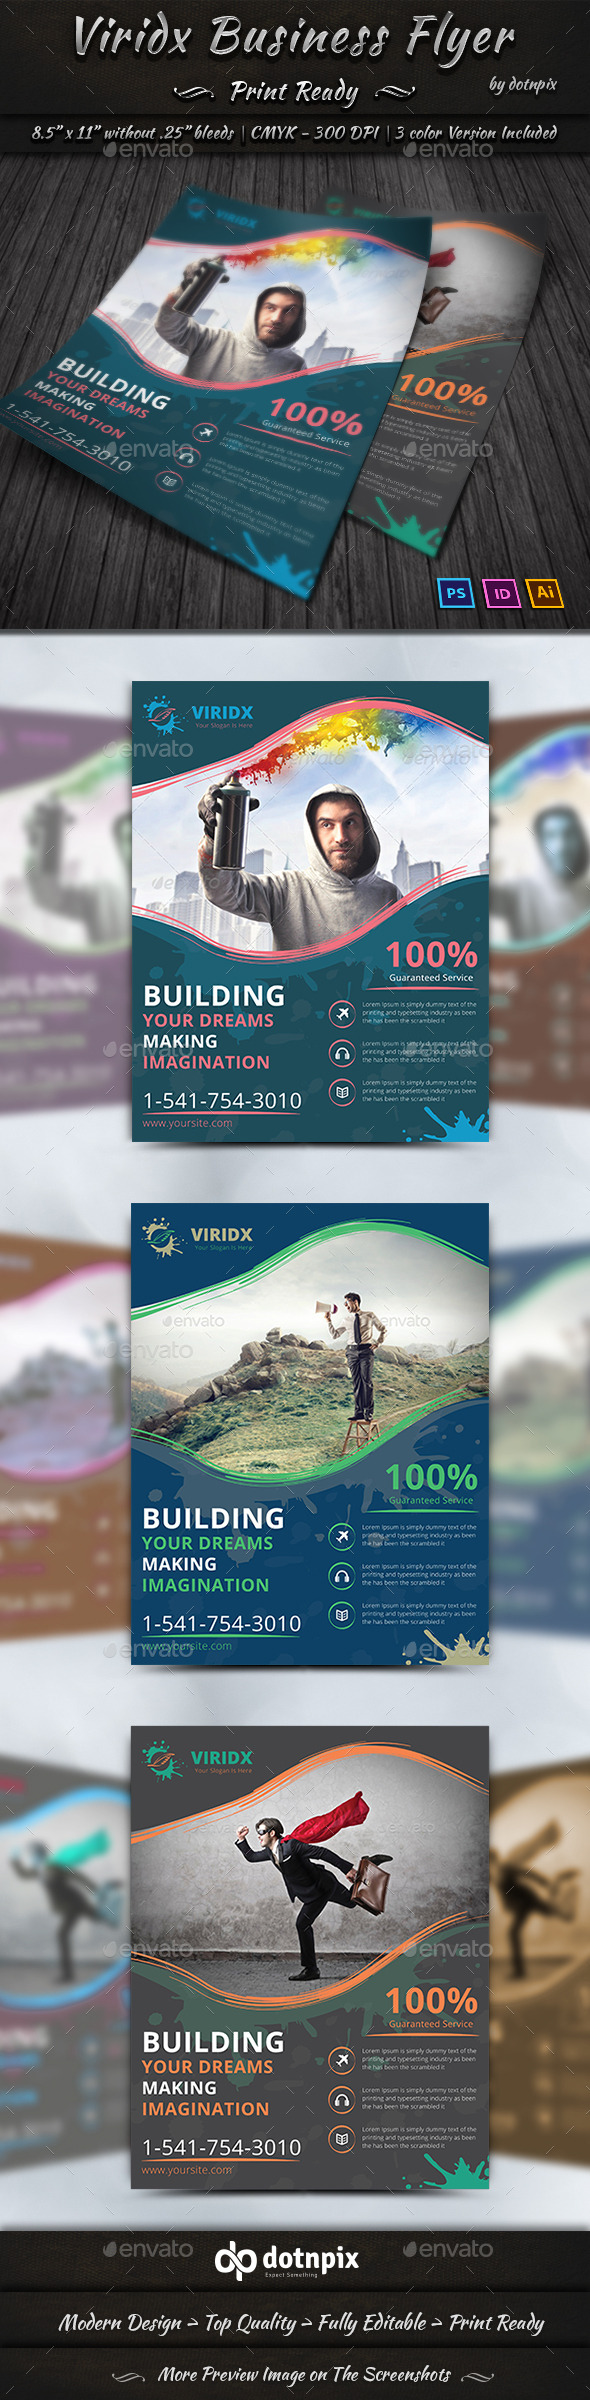 GraphicRiver Viridx Business Flyer 10279997